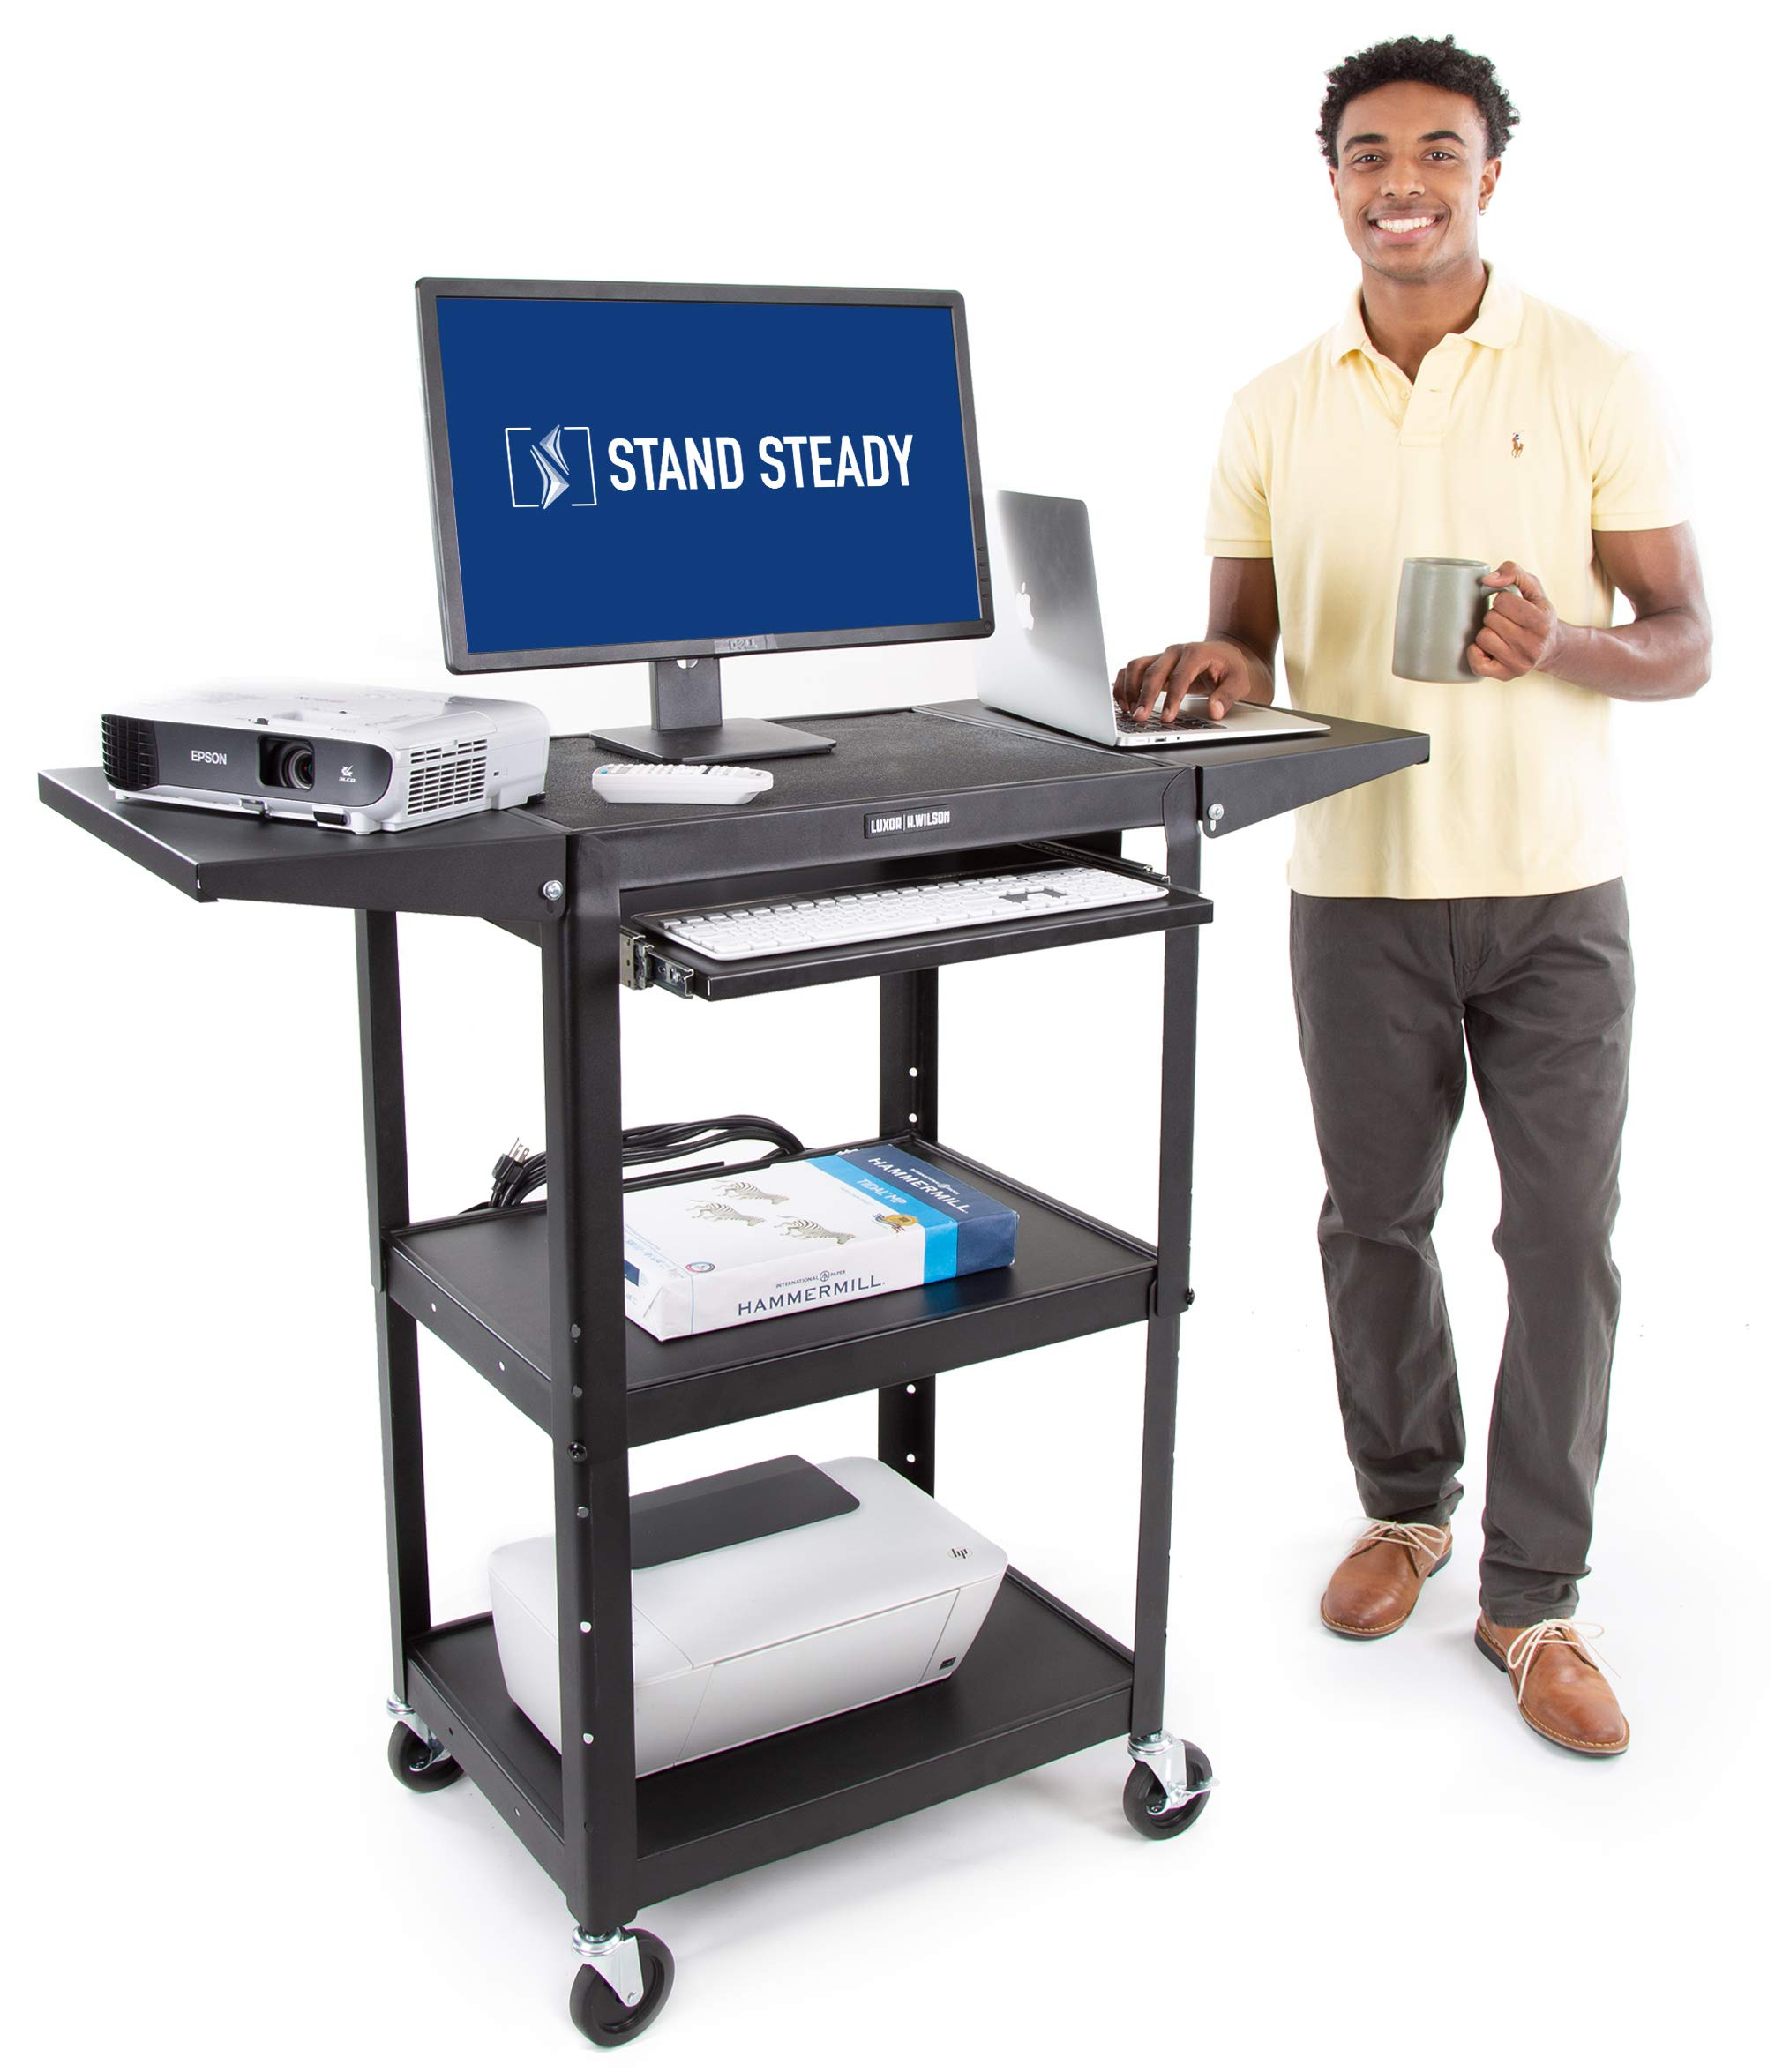 Line Leader AV Cart with Drop Leaf Shelves and Pullout Laptop Tray - Height Adjustable Utility Cart - Includes Power Strip and Cord Management - Great for Presentations (Black / 46 x 18) by Stand Steady